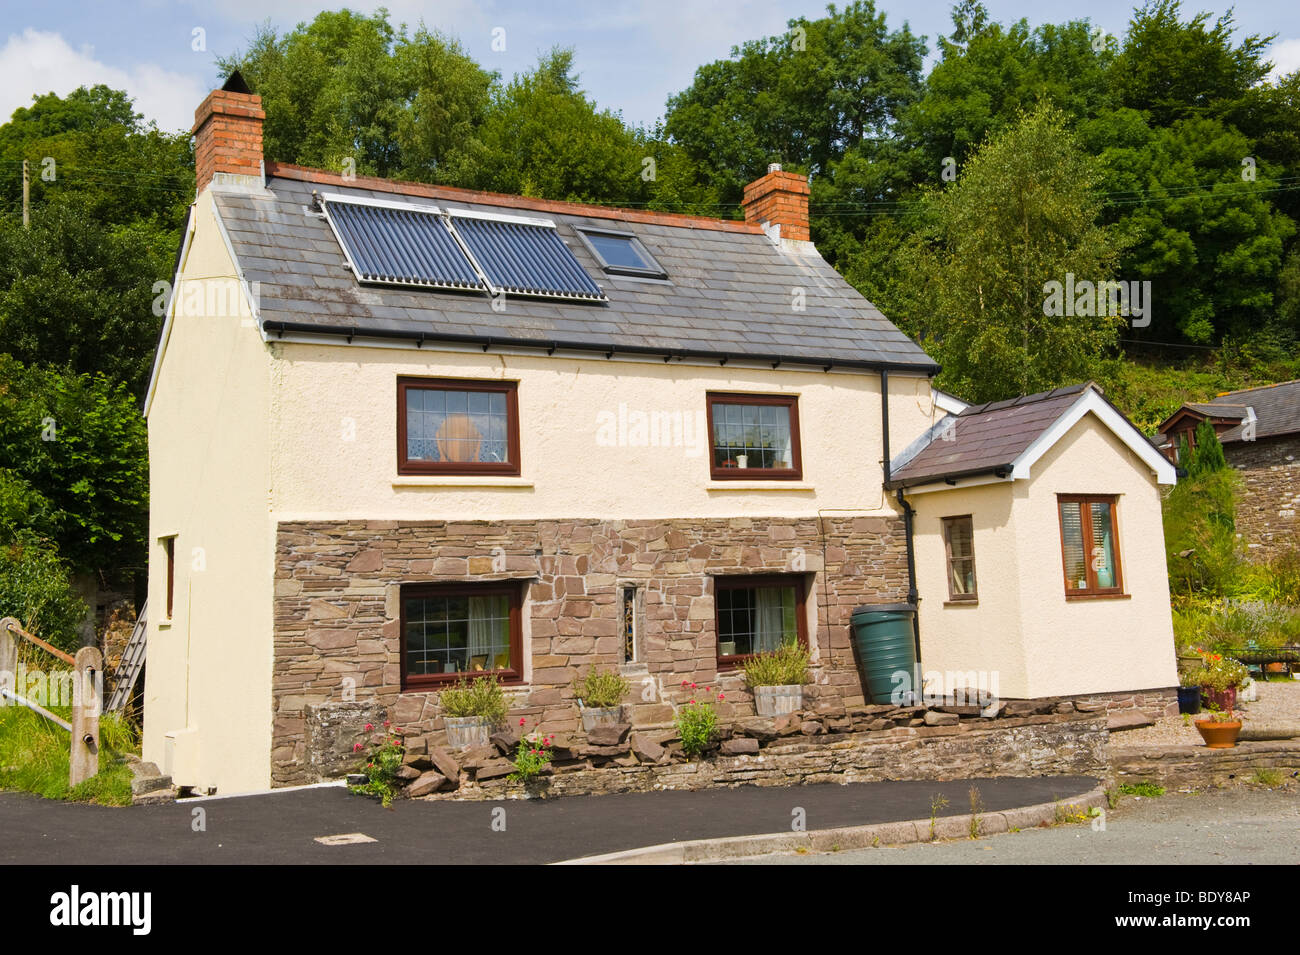 Solar Panels for hot water on roof of cottage near Brecon Powys Wales UK - Stock Image